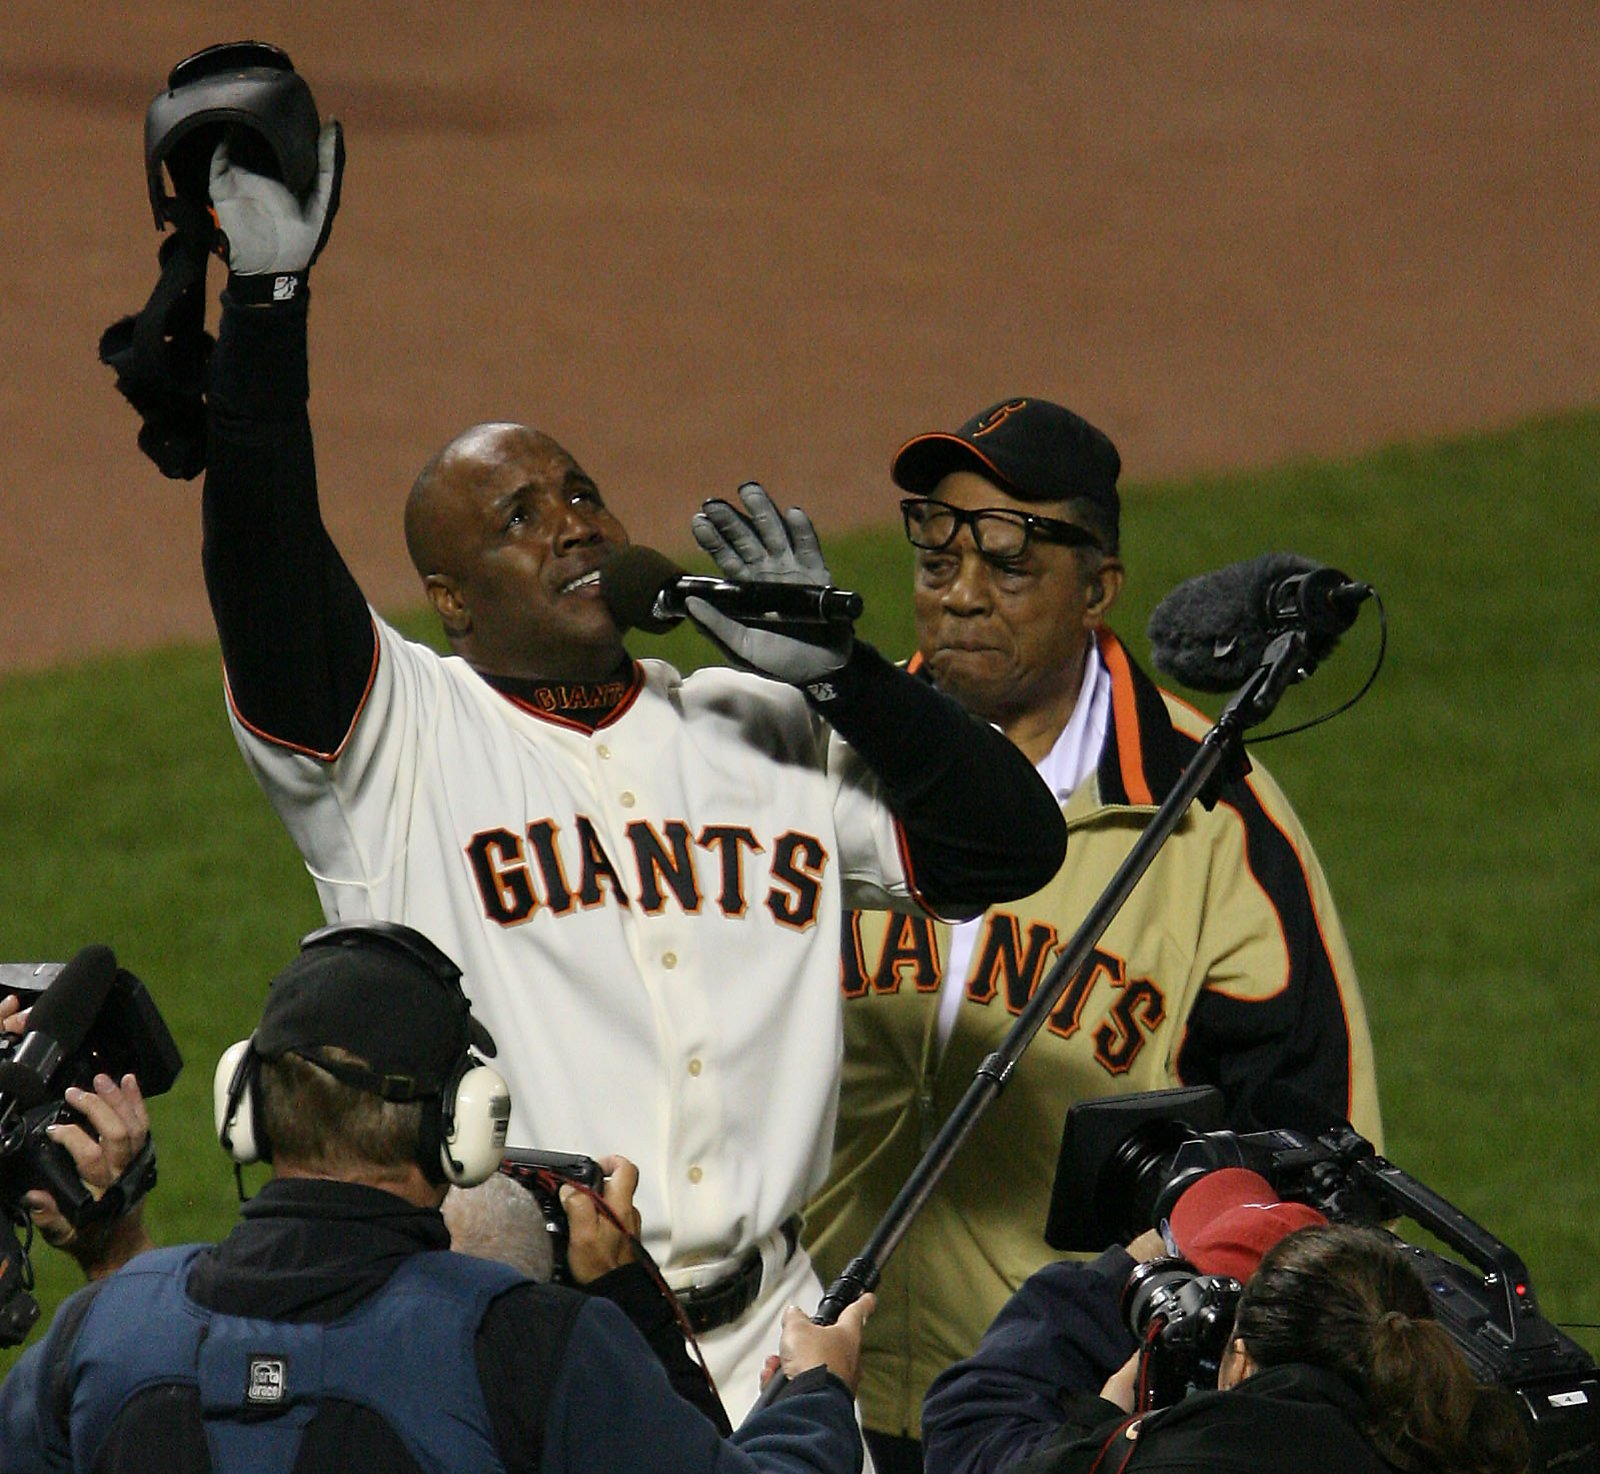 barry bonds February 28, 2008 dear fans, i have been getting a lot of emails asking what i've been up to this past offseason this winter has been the first time in my career that i've had the chance to take time for myself and really enjoy the time off.